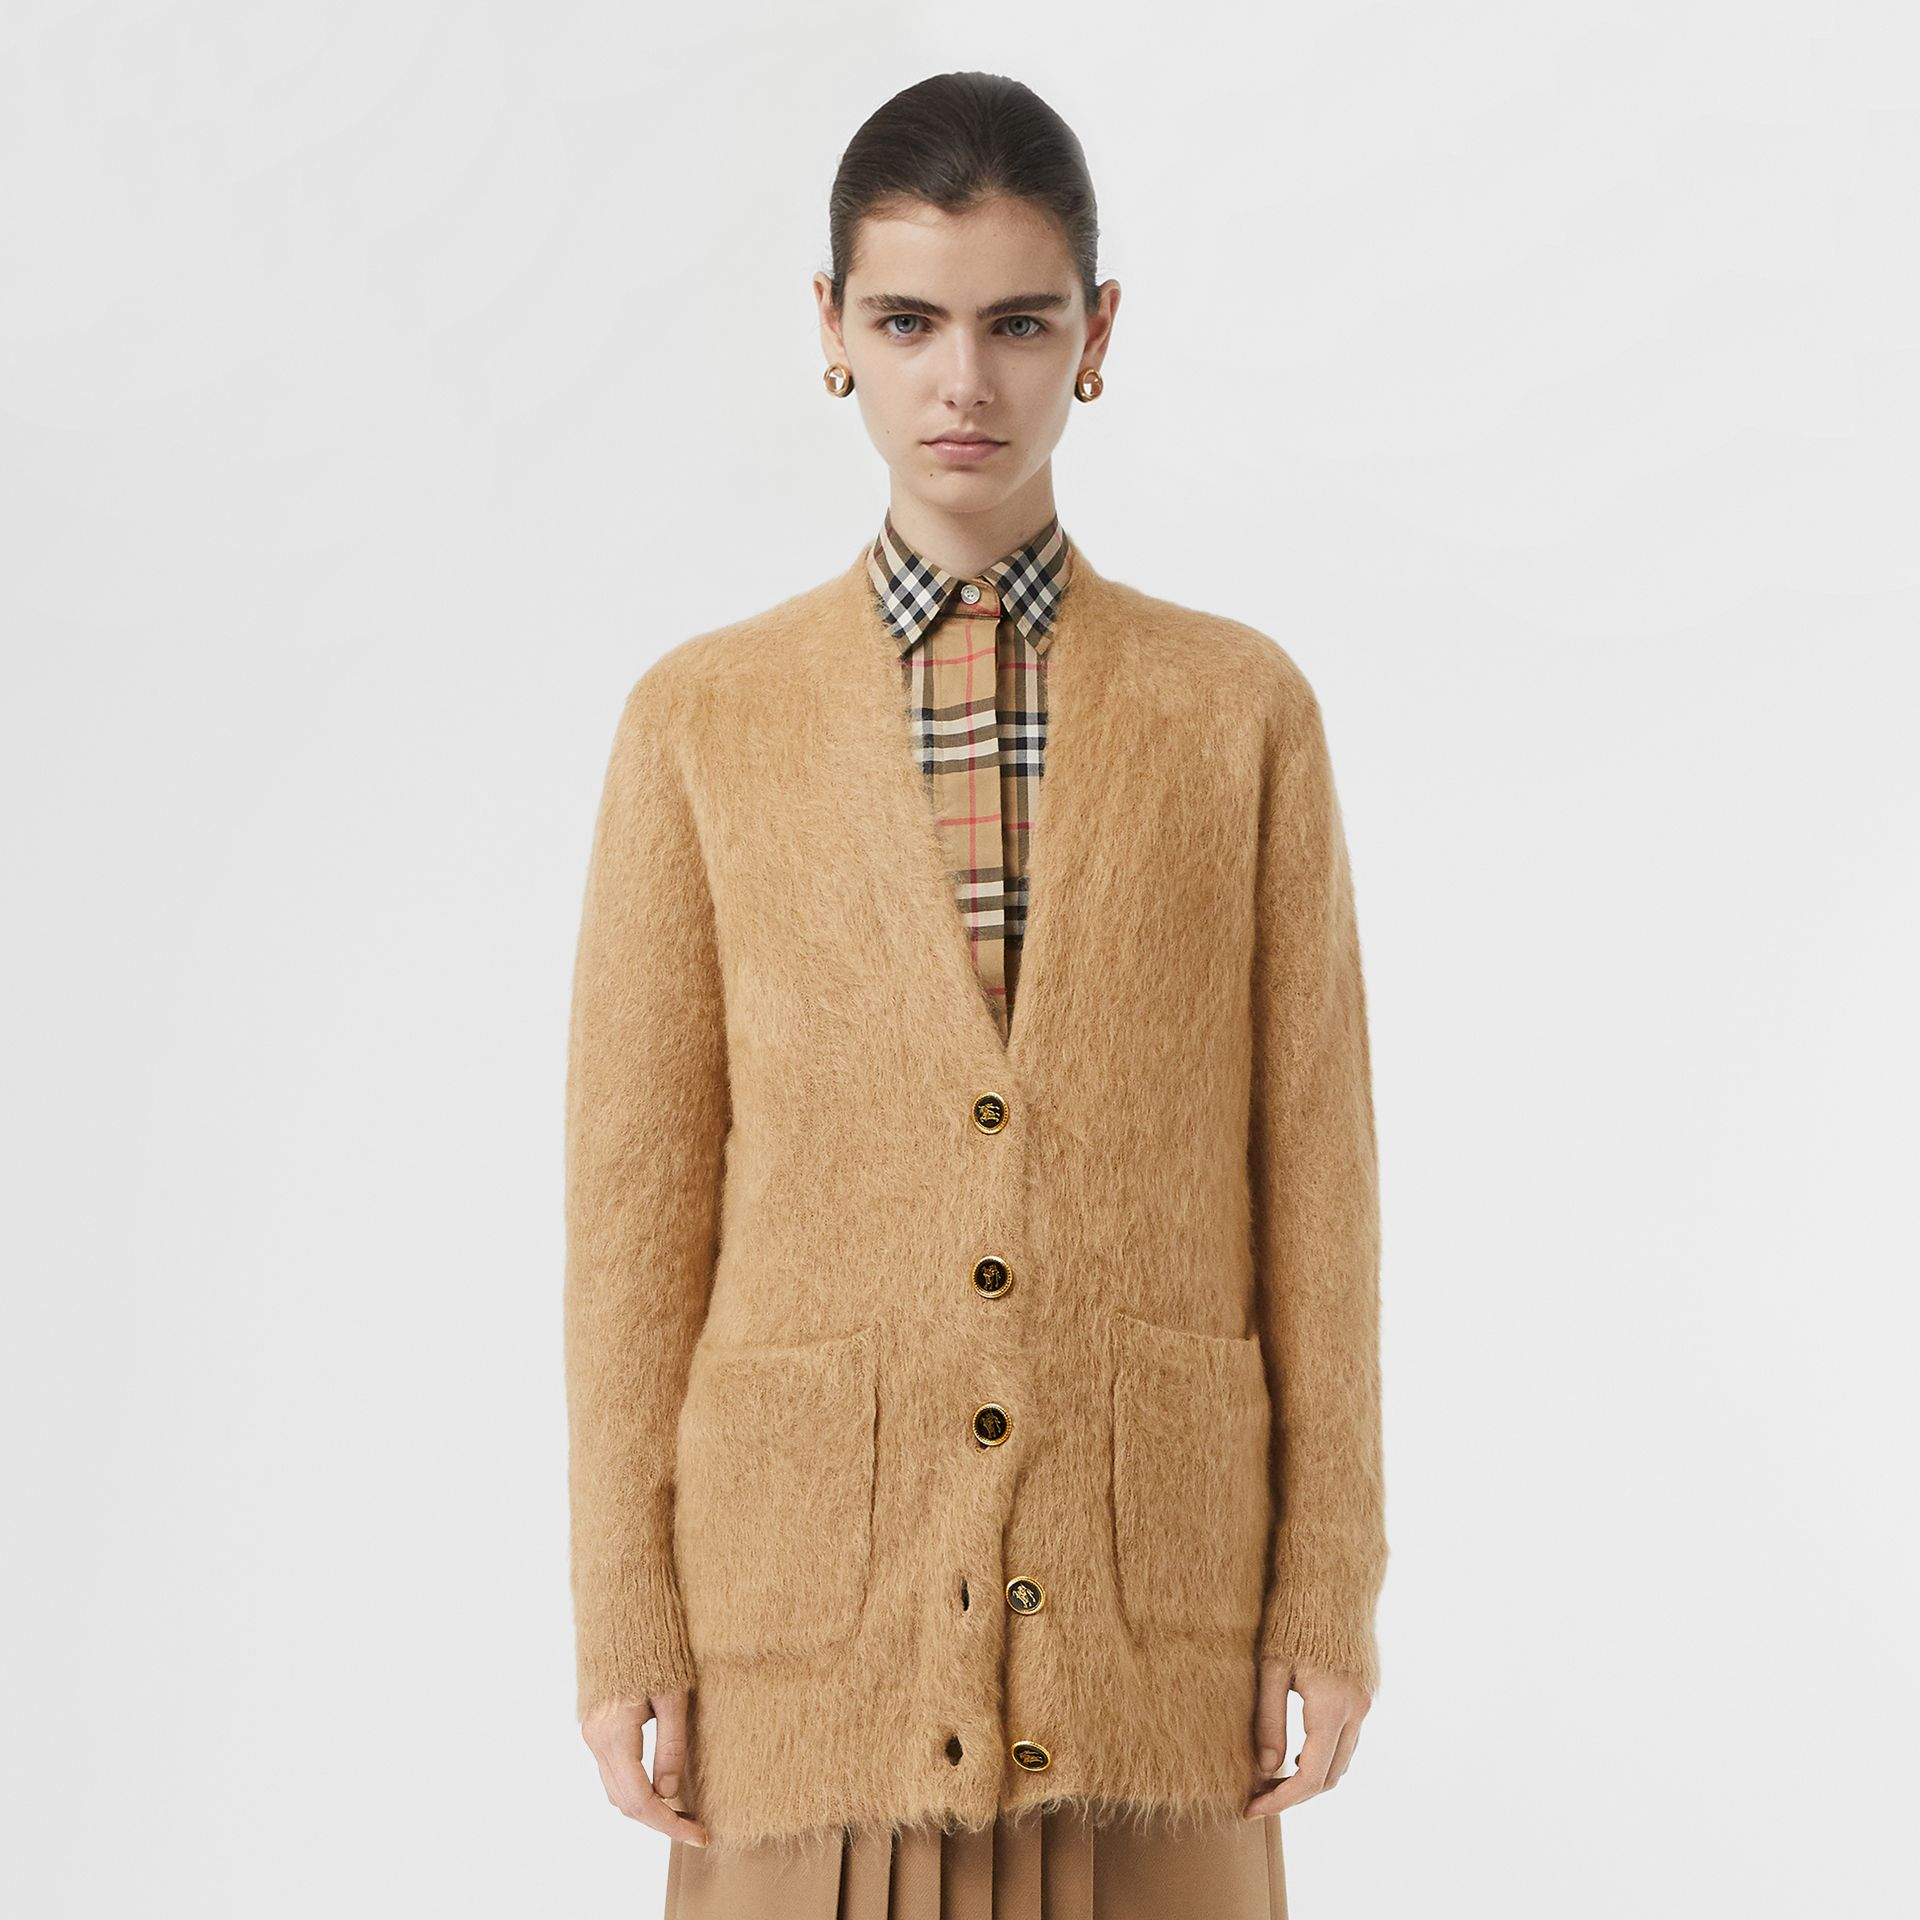 Silk Mohair Wool Blend V-neck Cardigan in Light Camel - Women | Burberry Australia - gallery image 7